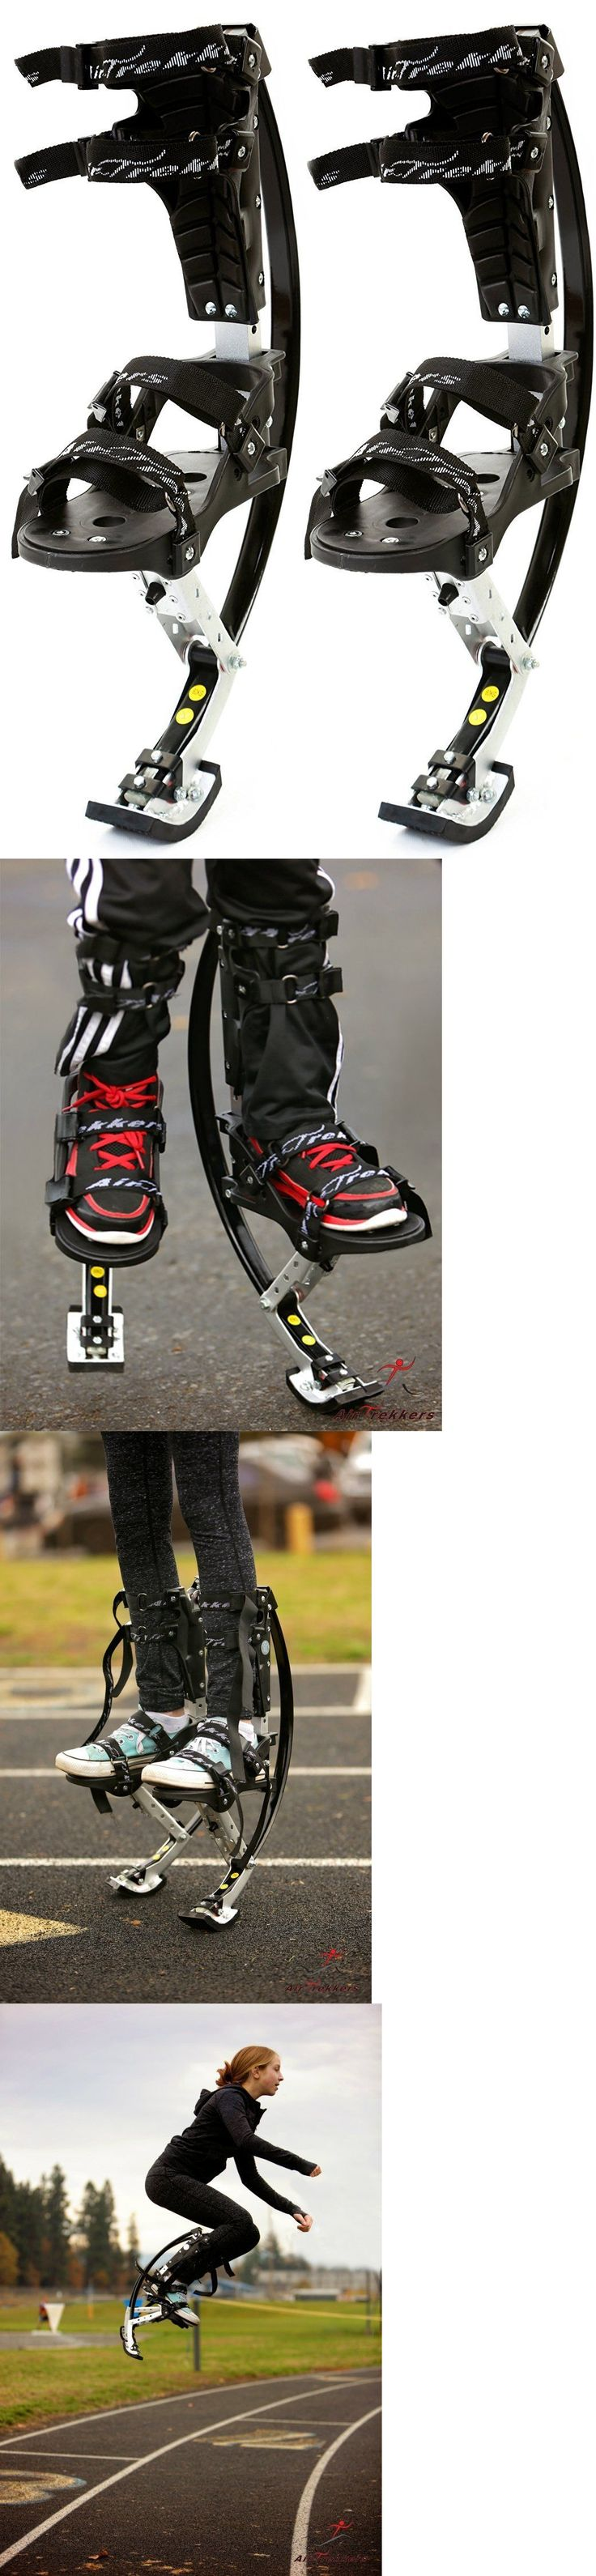 Other Outdoor Sports 159048: Air Trekkers Kids Jumping Stilts Spring Loaded Jump Shoes, Youth (L), 95-120 Lbs -> BUY IT NOW ONLY: $134.95 on eBay!